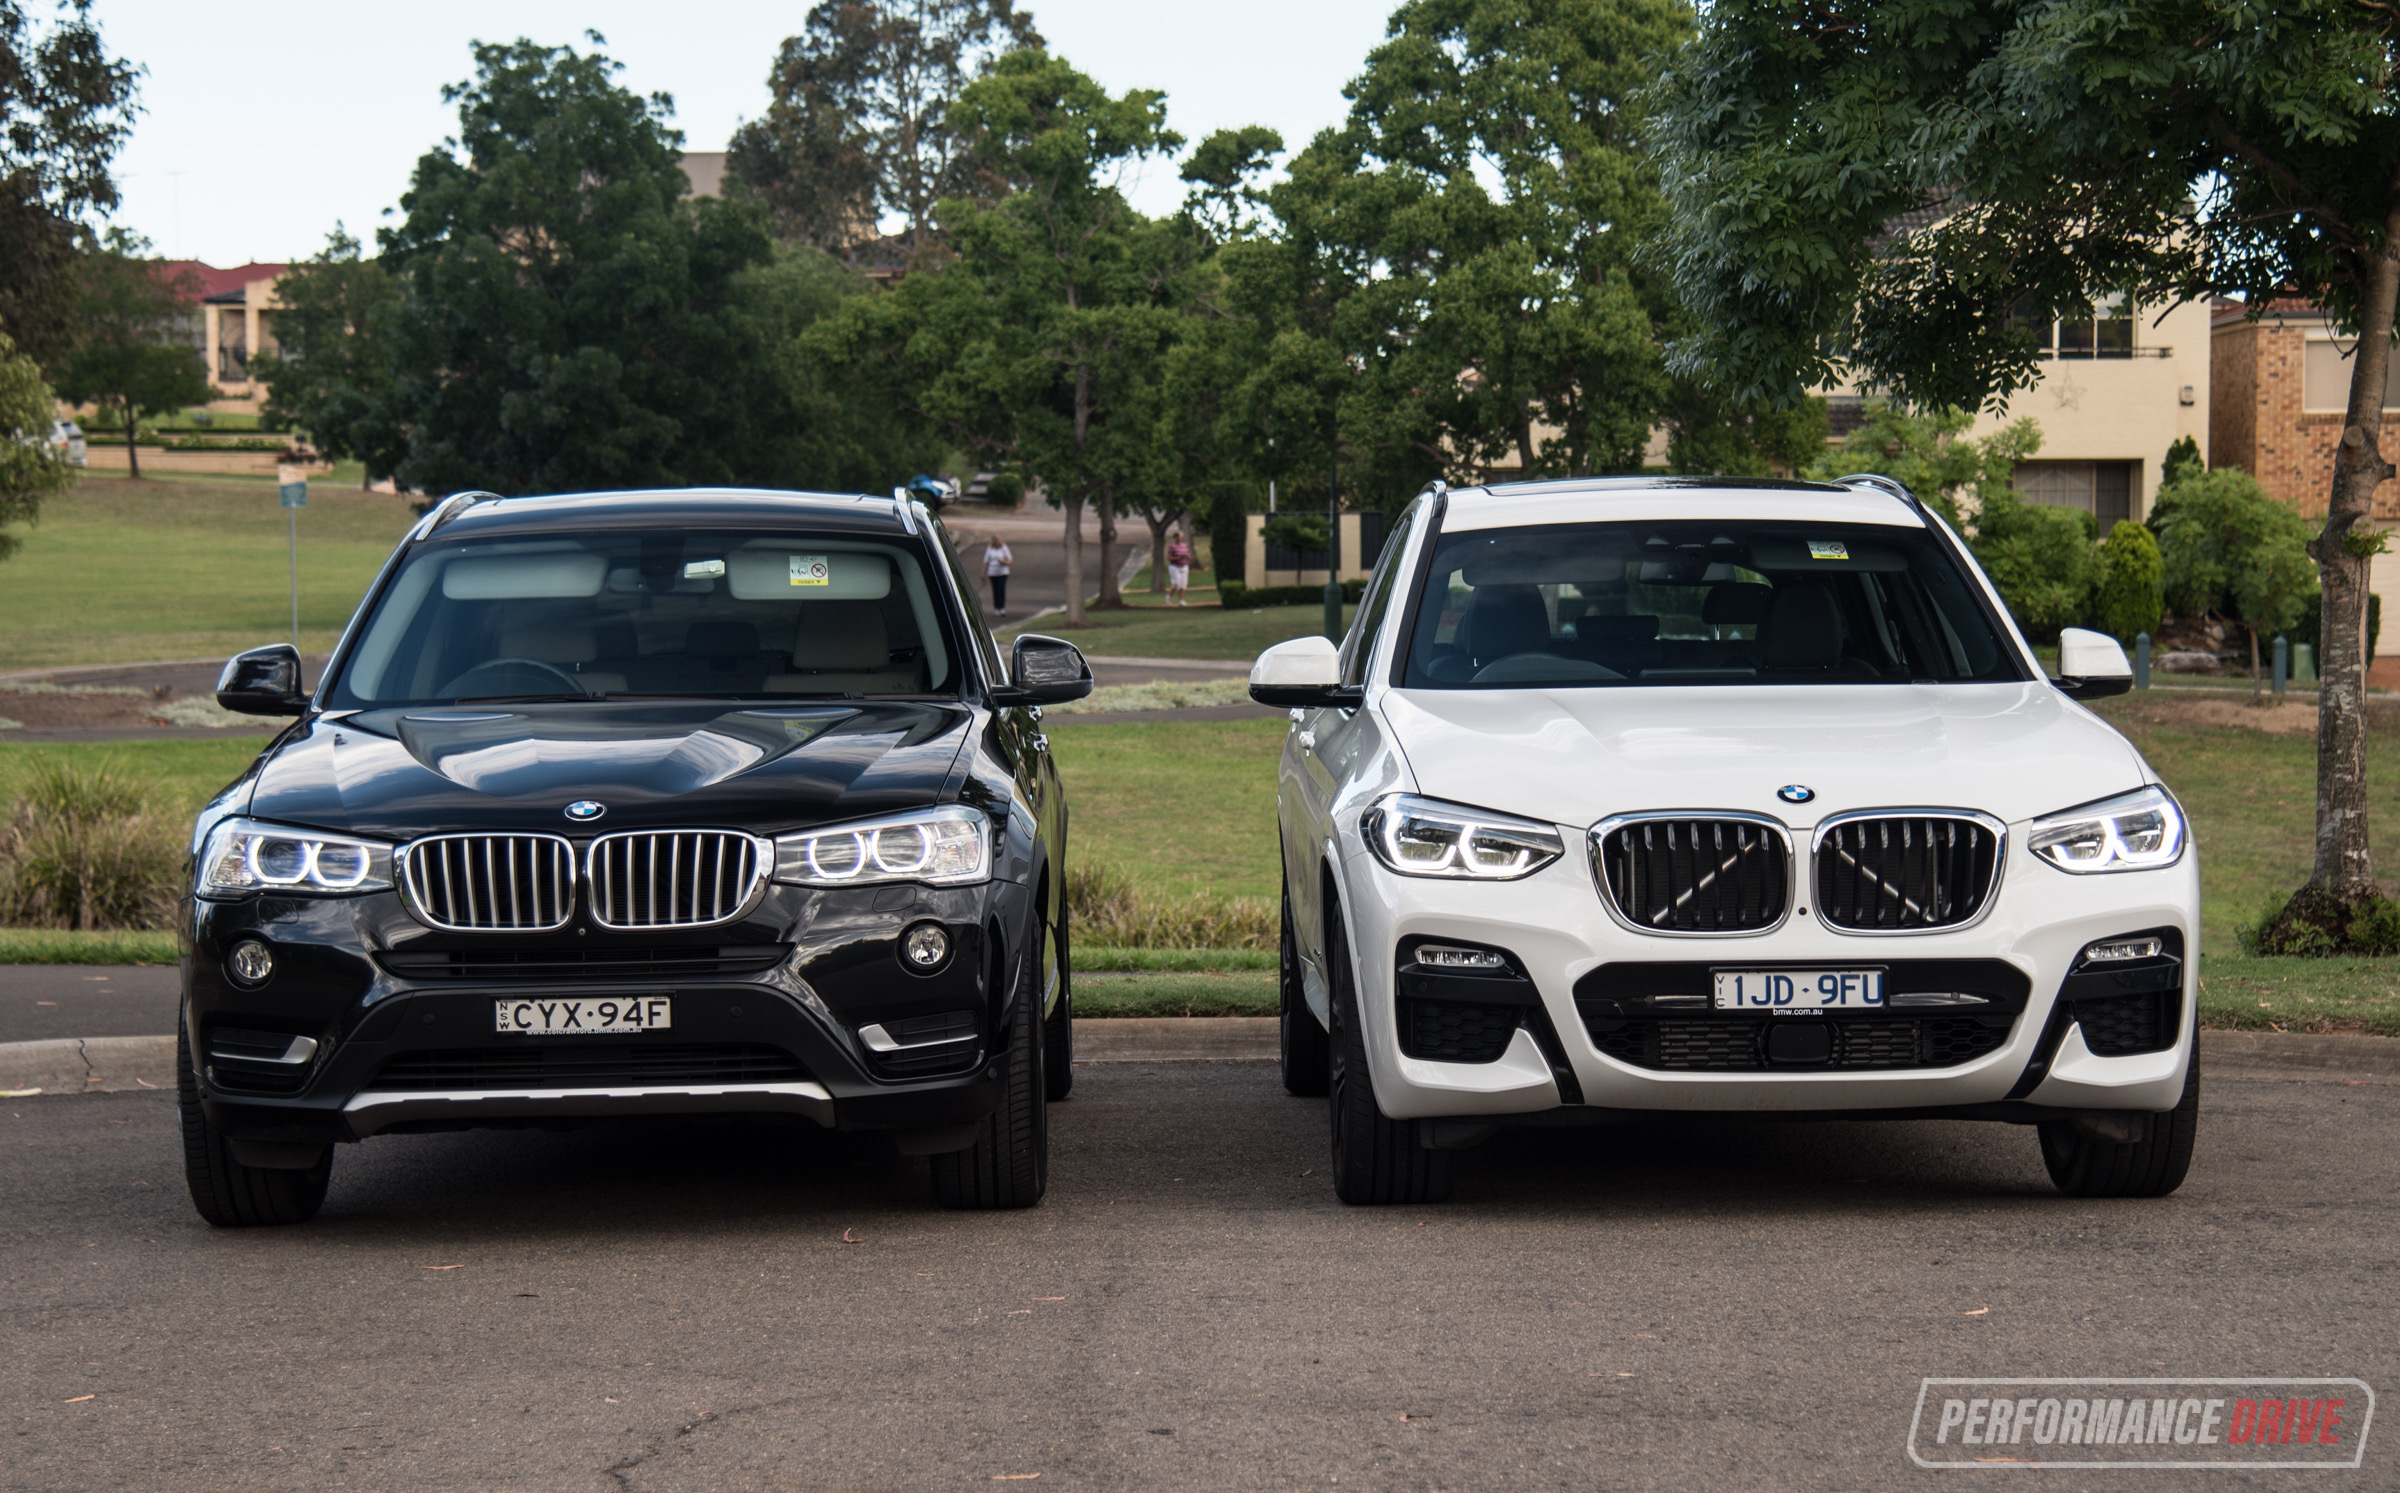 Peugeot Convertibles 2017 >> 2018 BMW X3 xDrive30d vs 2016 X3-2